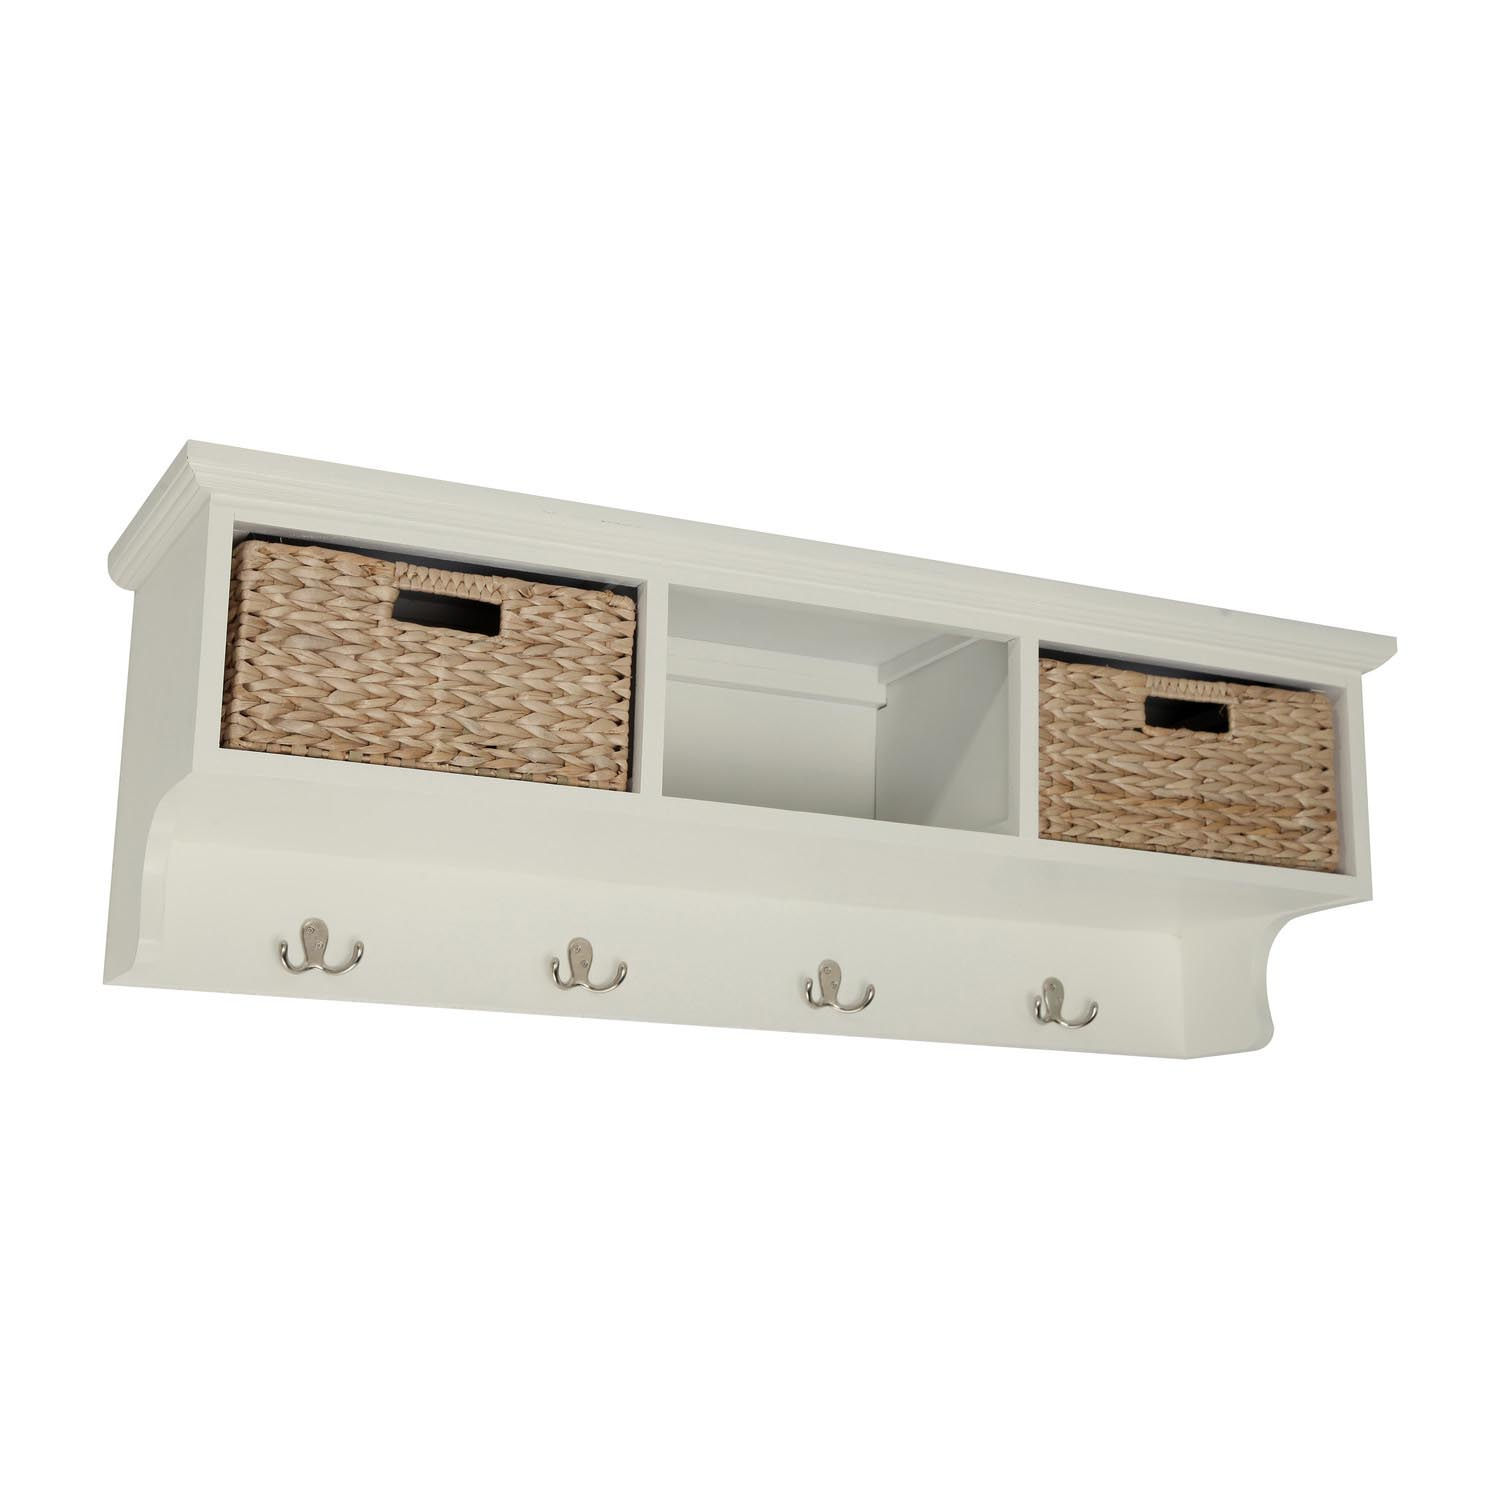 Wall Storage Shelves with Baskets